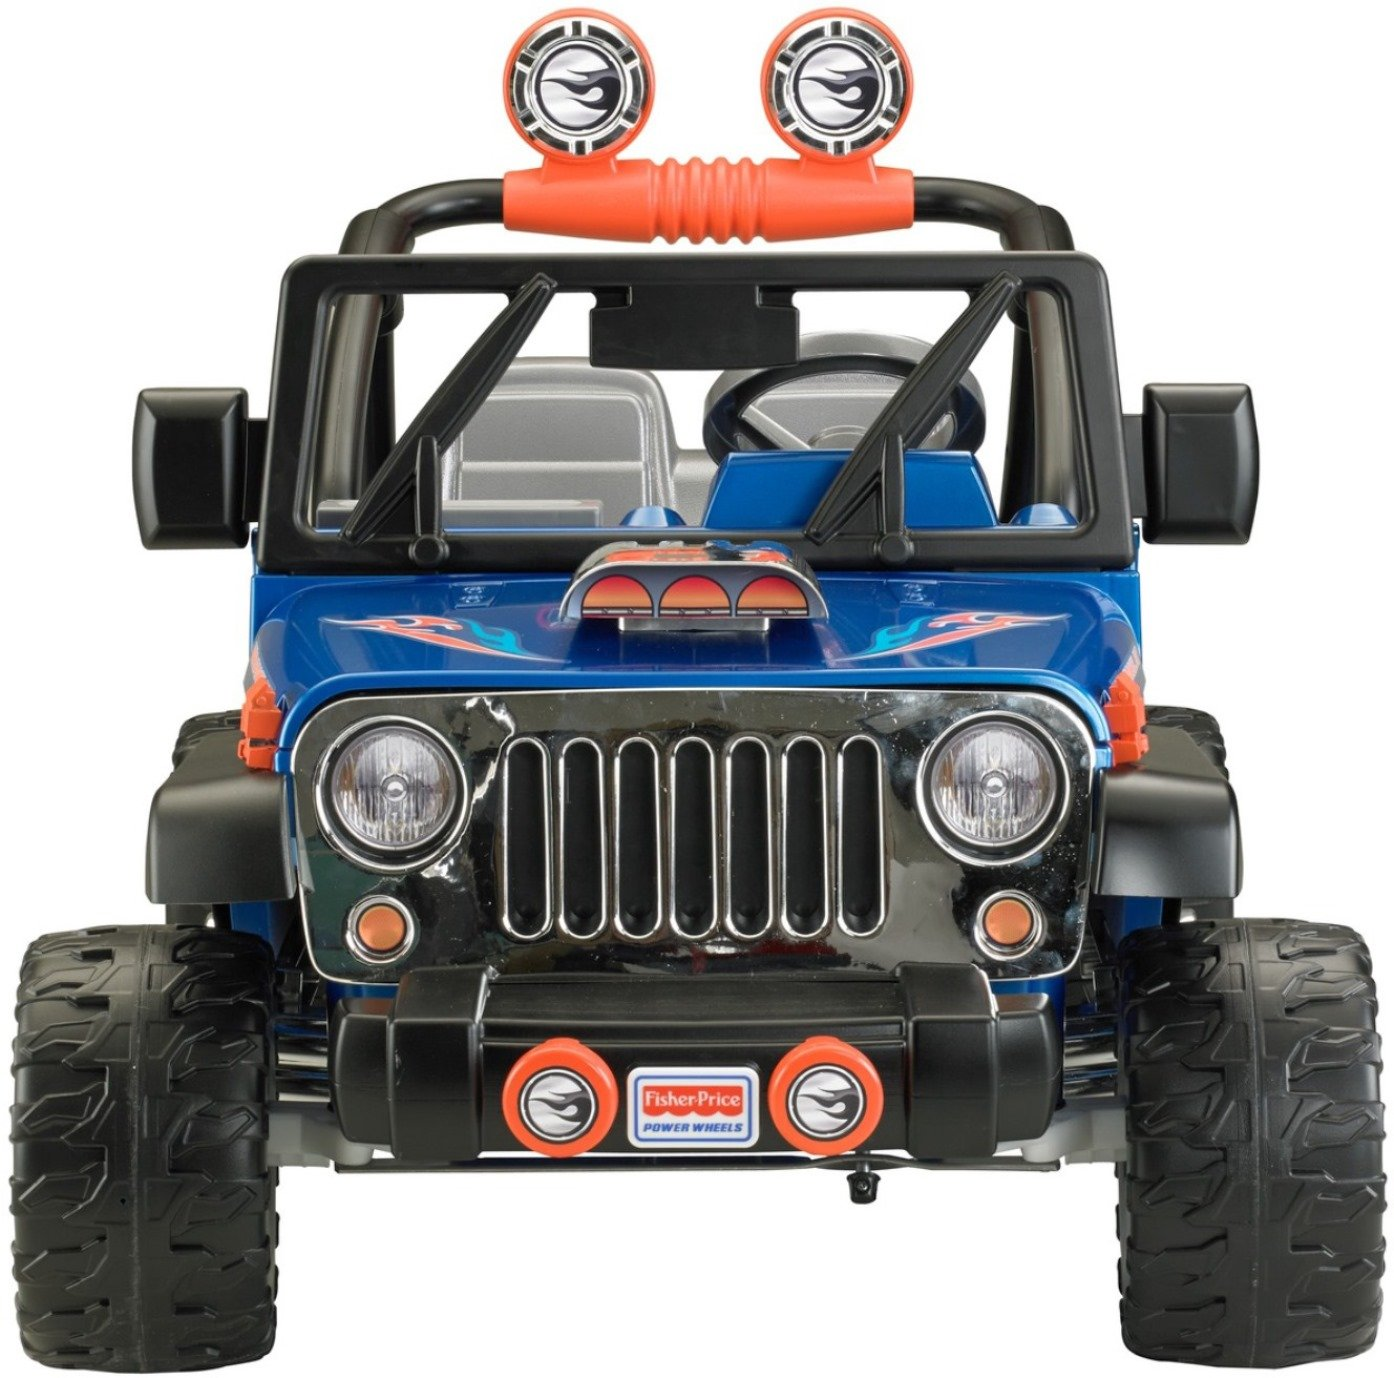 Power Wheels Hot Wheels Jeep Wrangler, Blue (12V) by Power Wheels (Image #3)